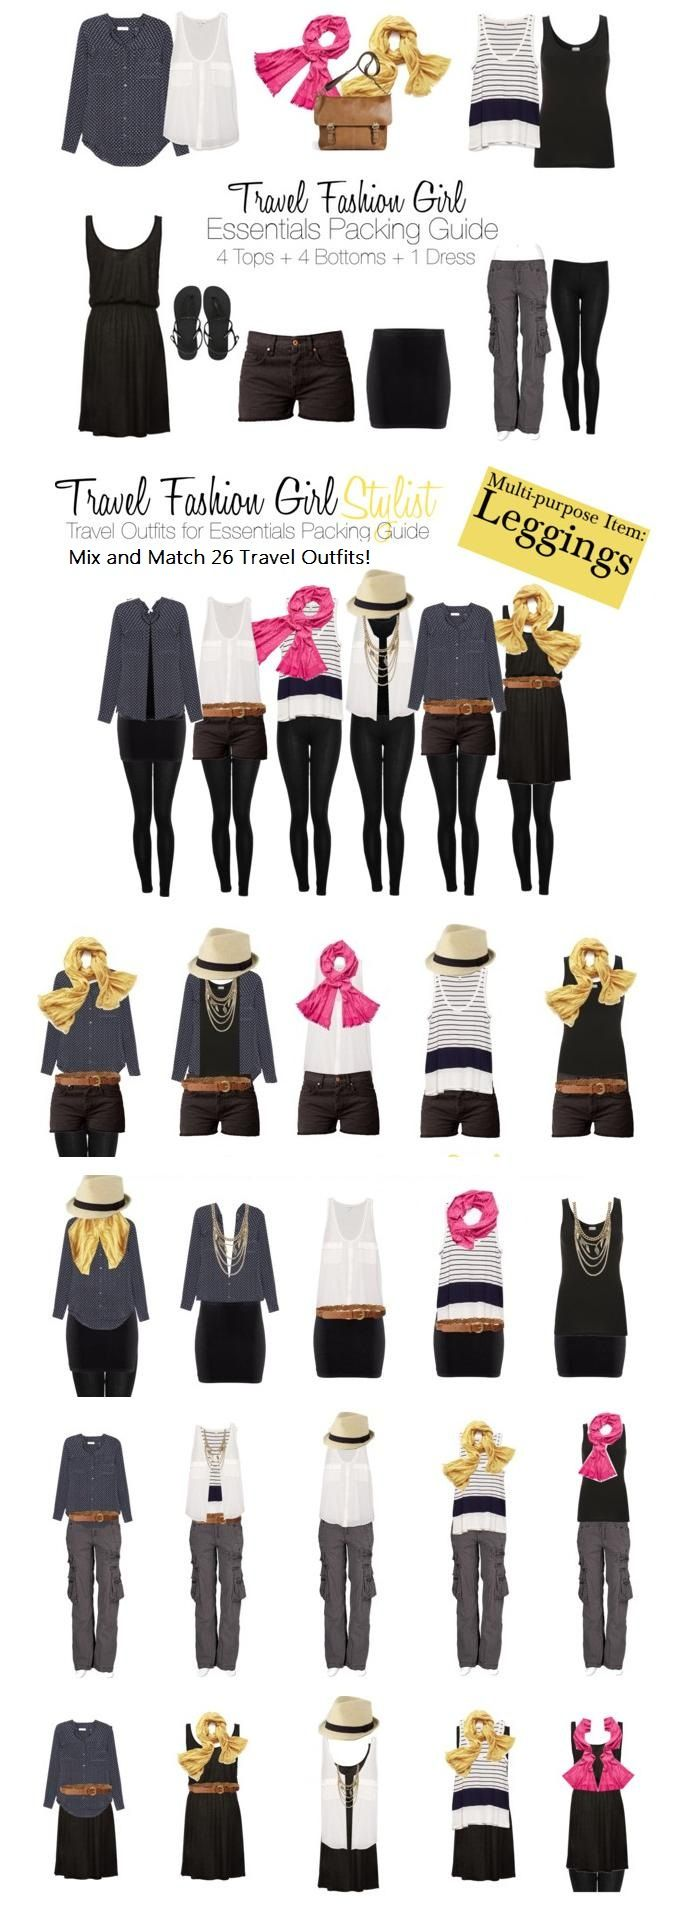 Mix and match 26 travel outfits with 8 pieces of clothing travel mix and match 26 travel outfits with 8 pieces of clothing travel outfits via travelfashiongirl fandeluxe Choice Image